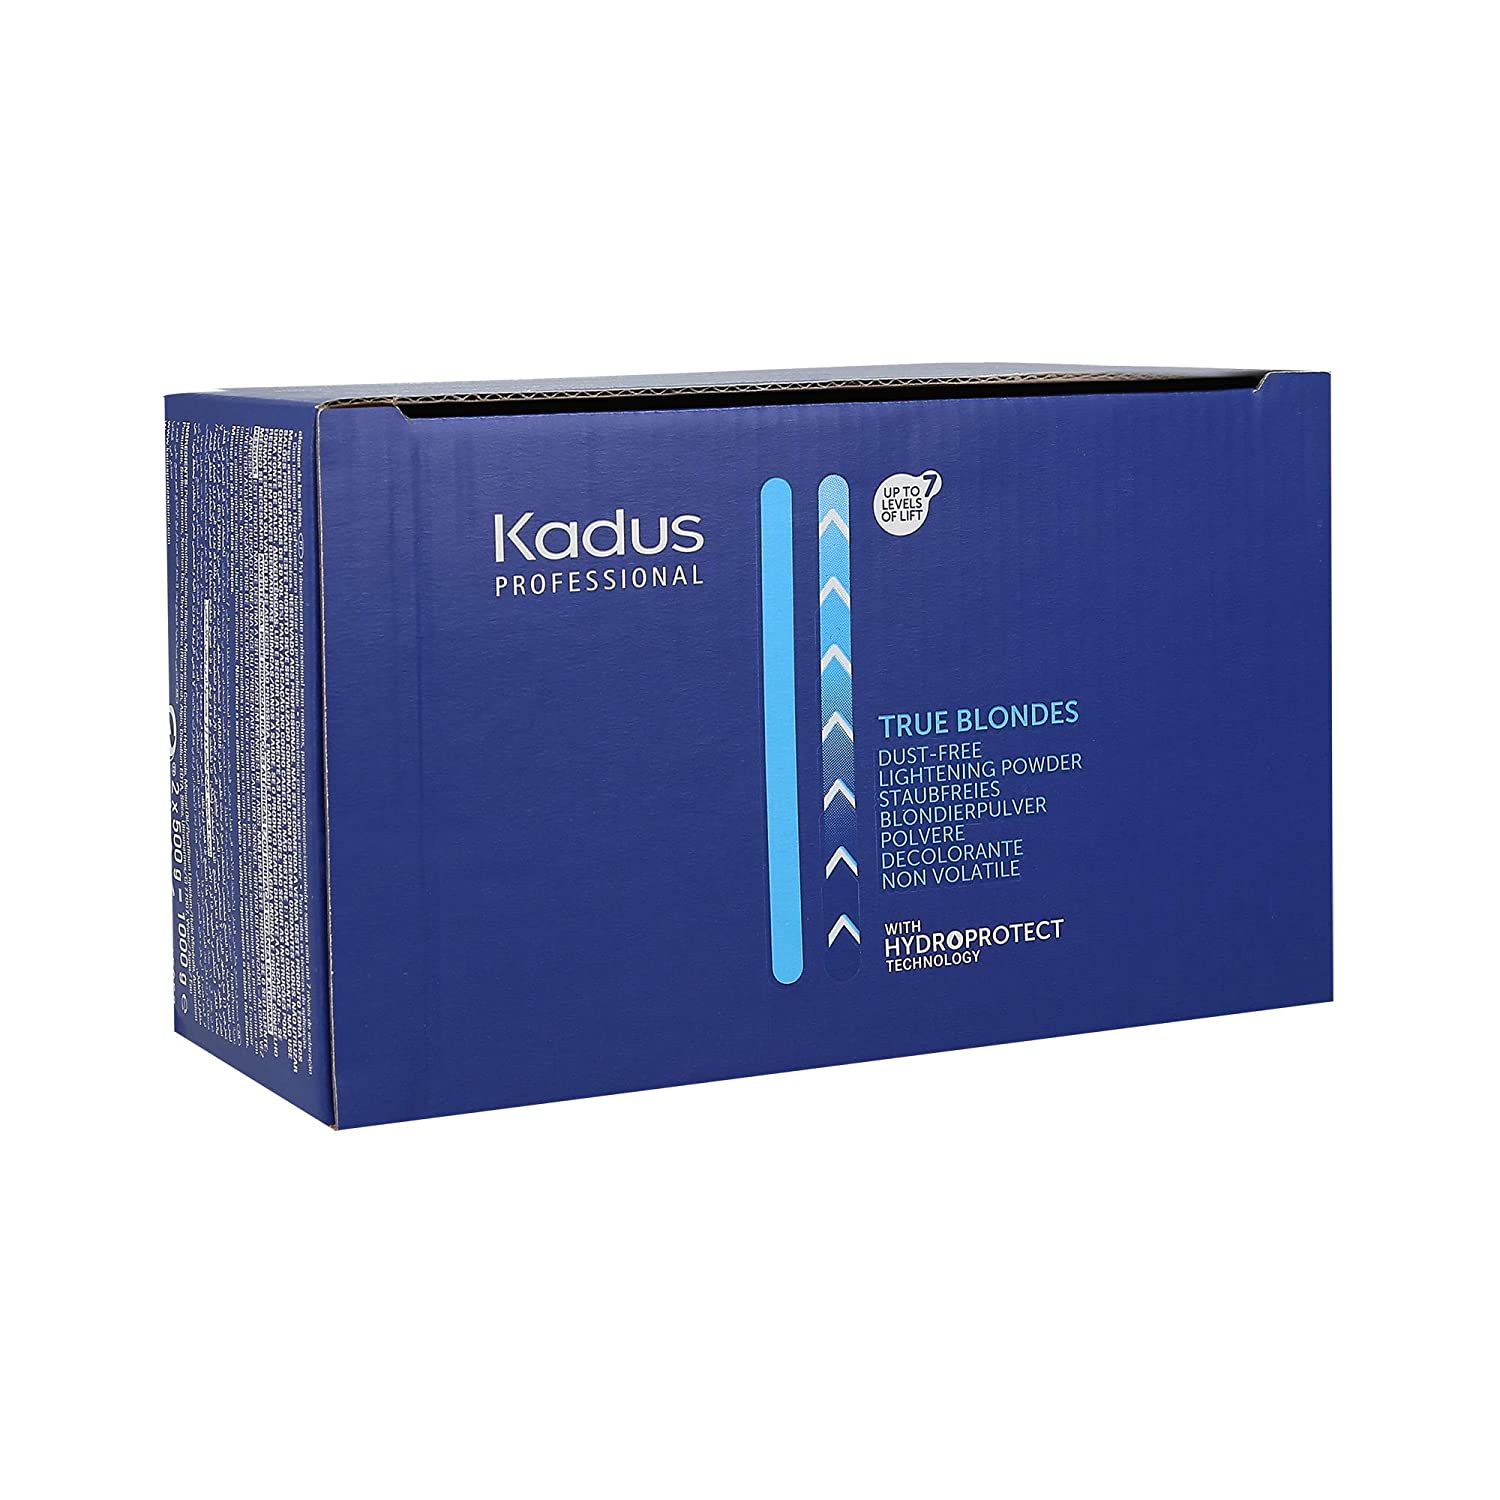 KADUS PROFESSIONAL TRUE BLONDES Dust-free Lightening Powder with Hydroprotect Technology, lot de 1 (2 x 500 g)